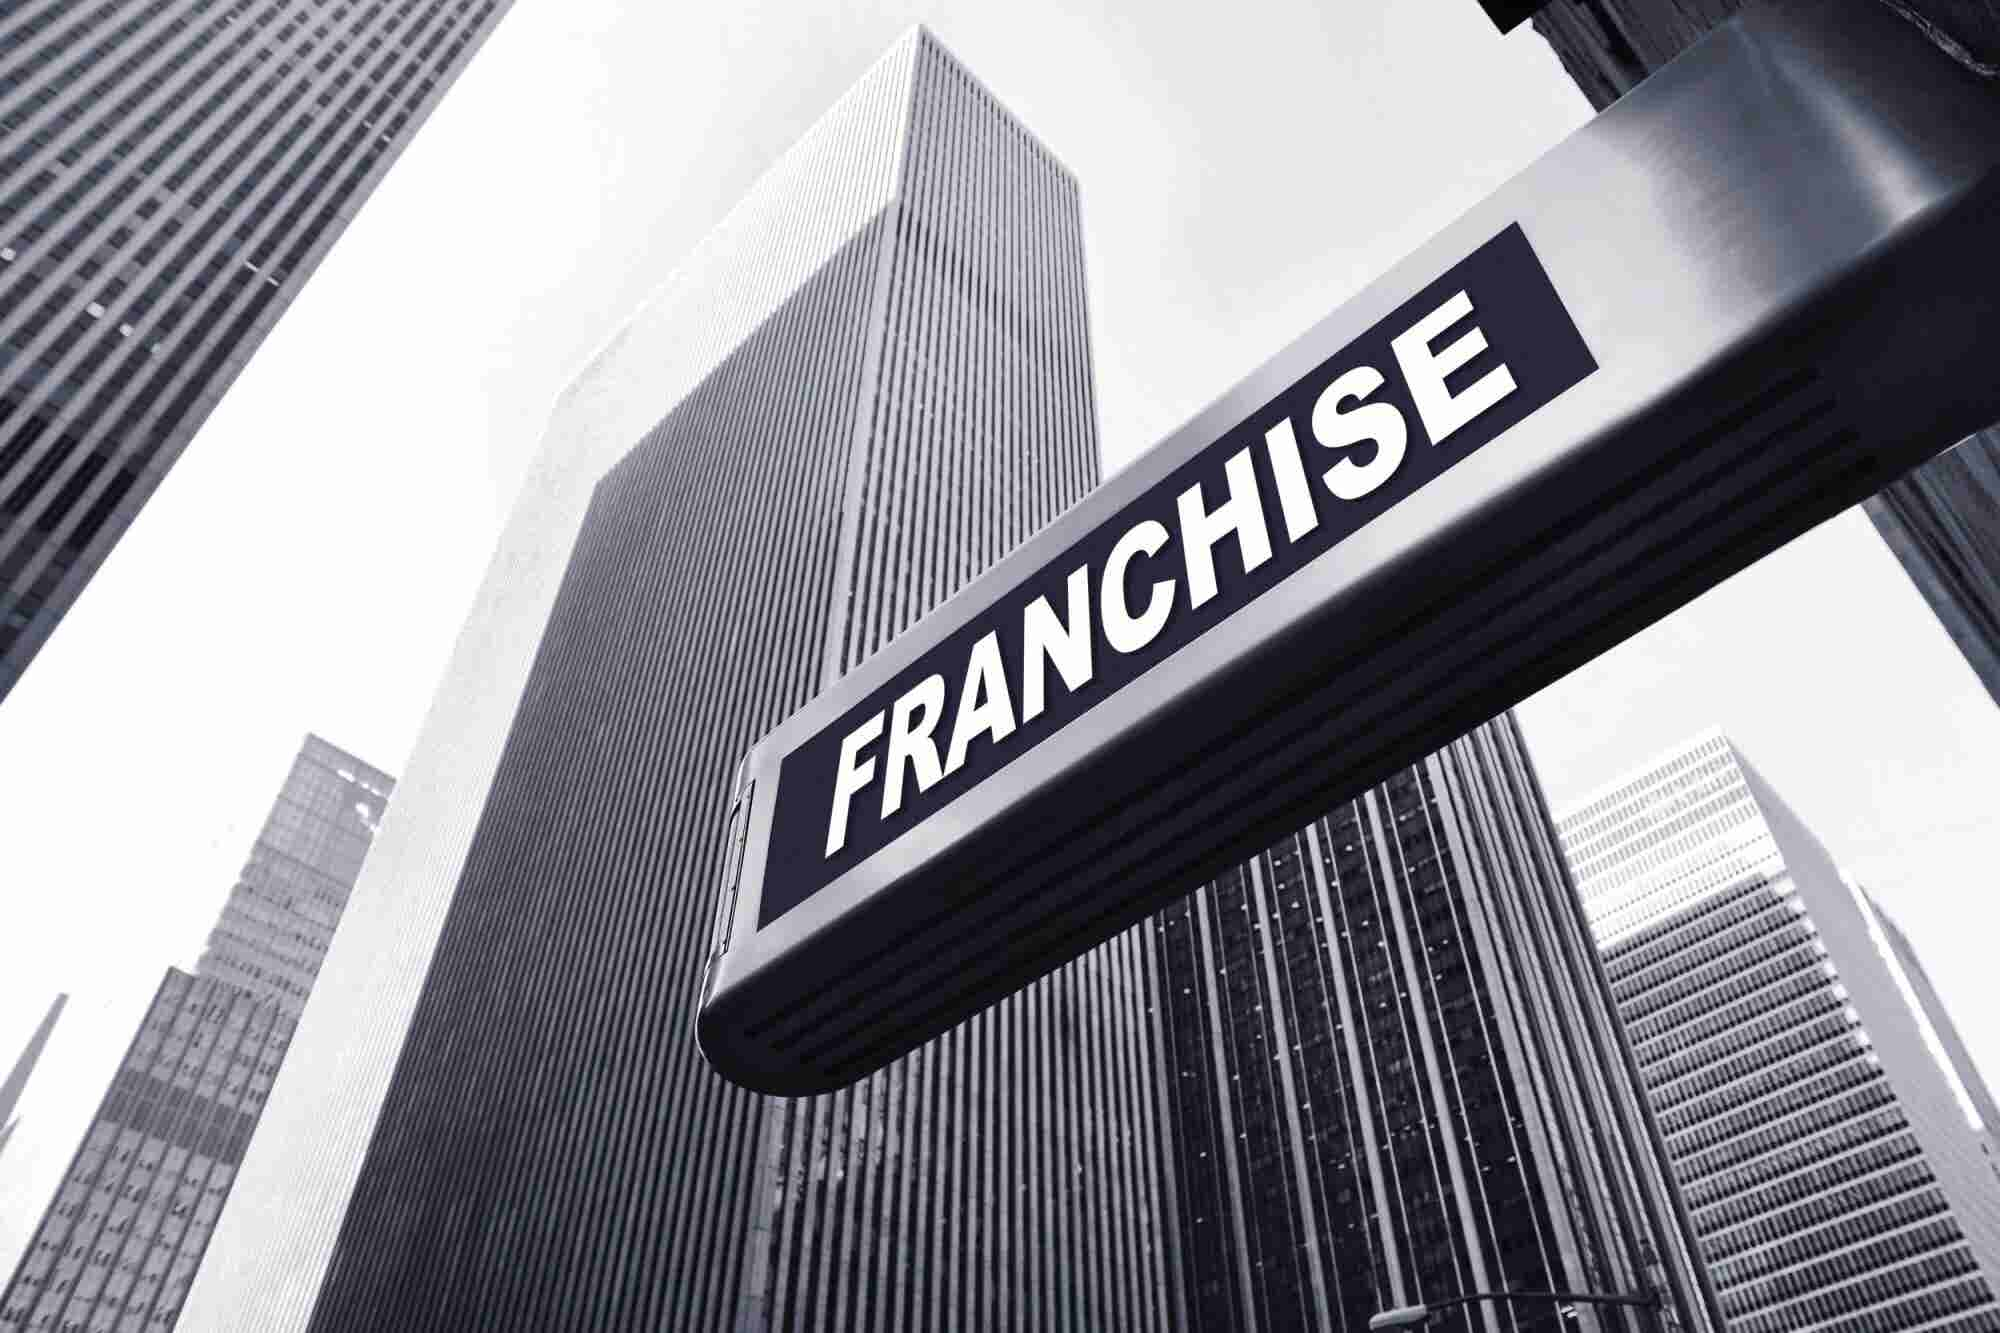 What to Look for in a Profitable South African Franchise Business Opportunity